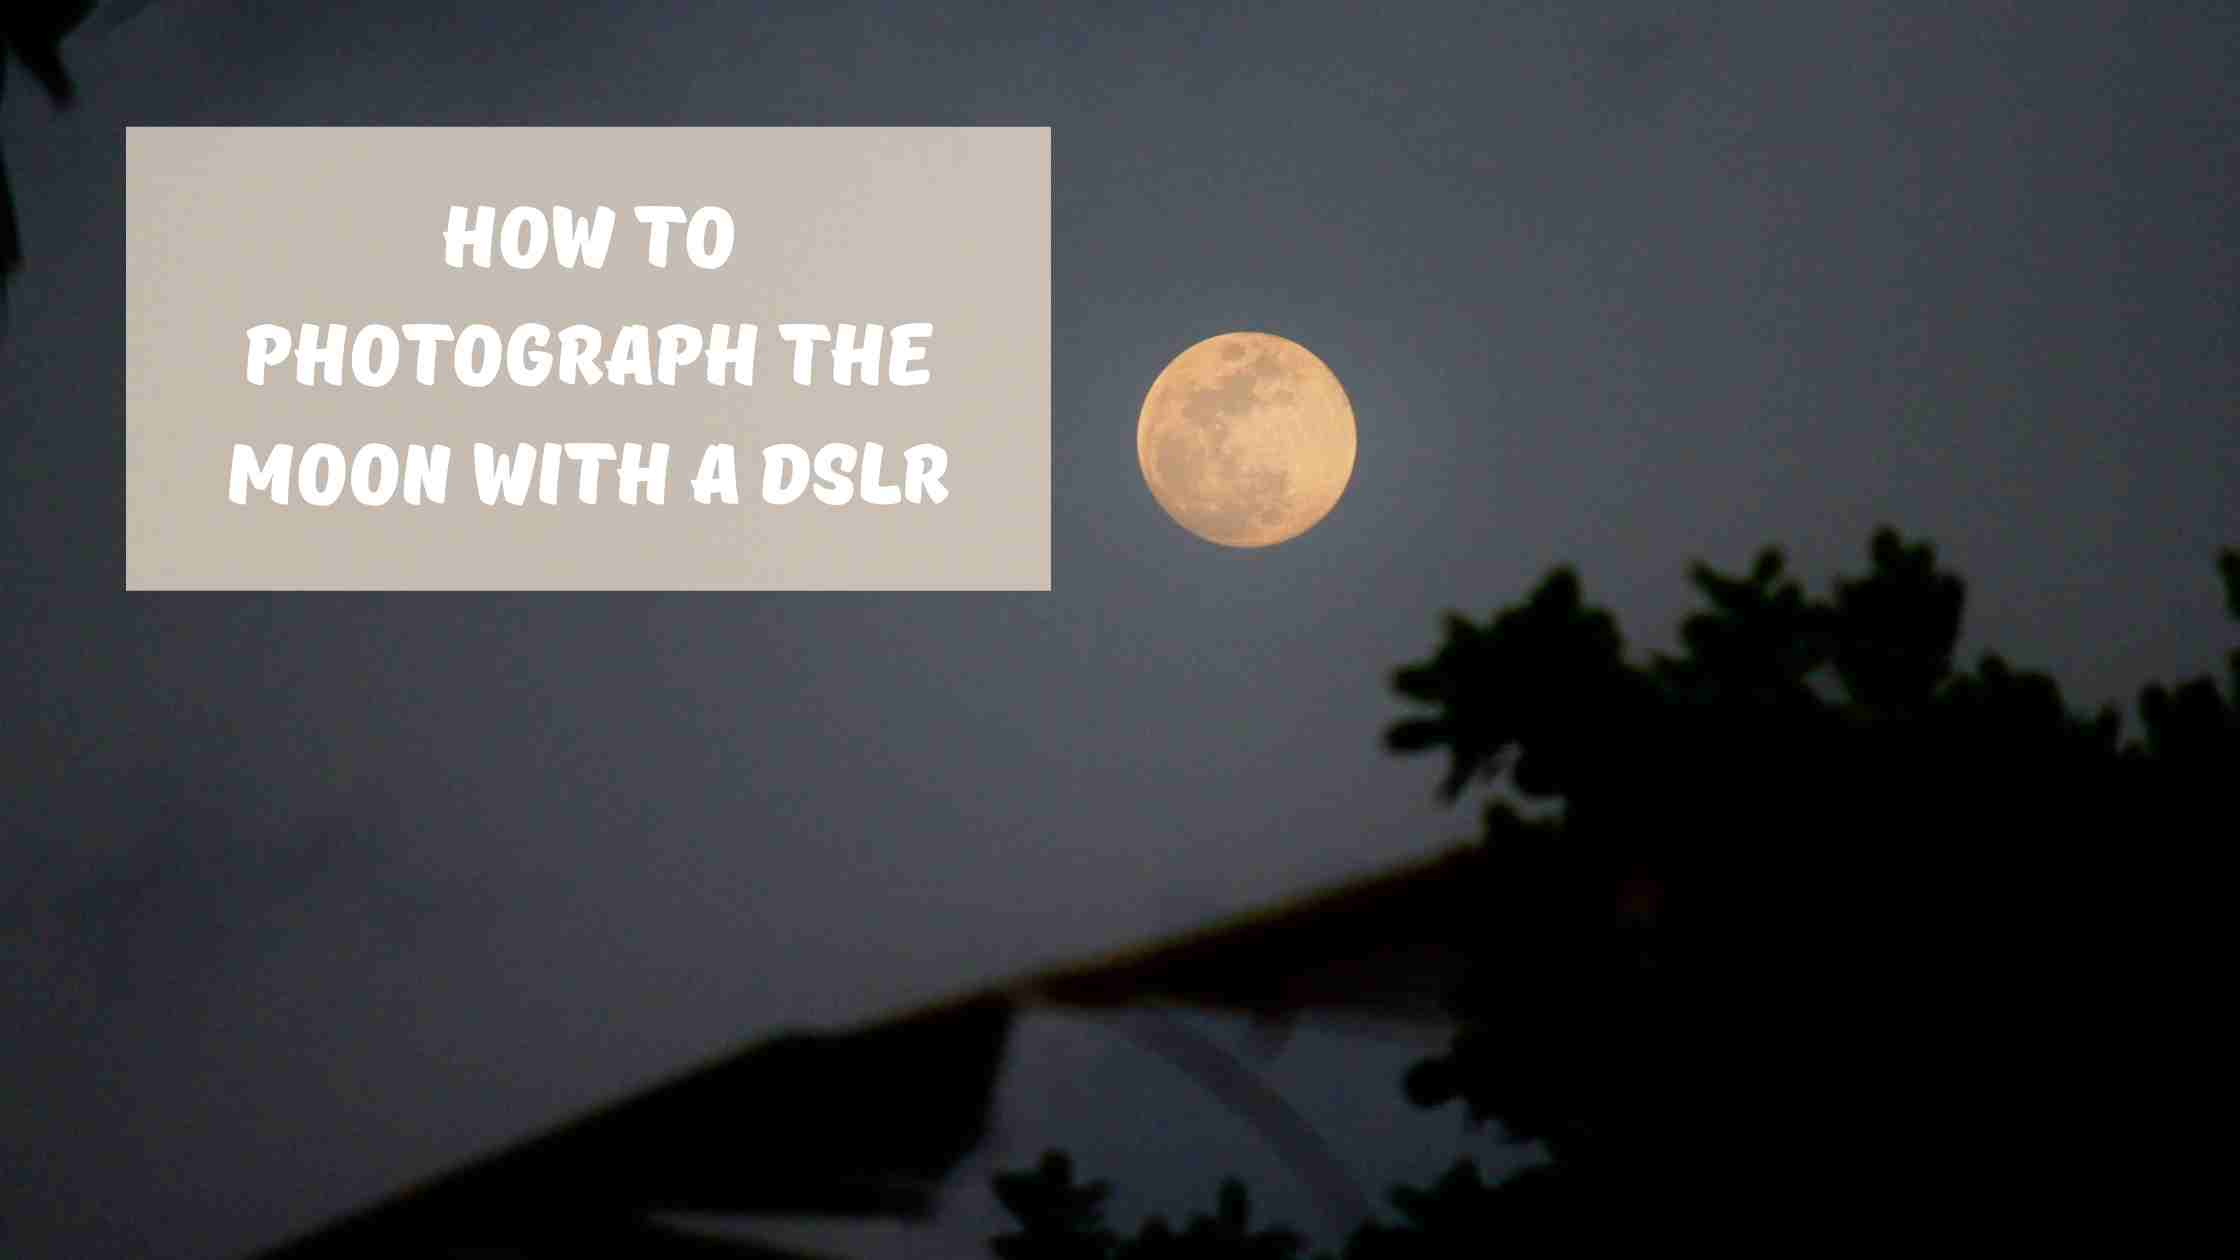 How to Photograph the Moon with a DSLR